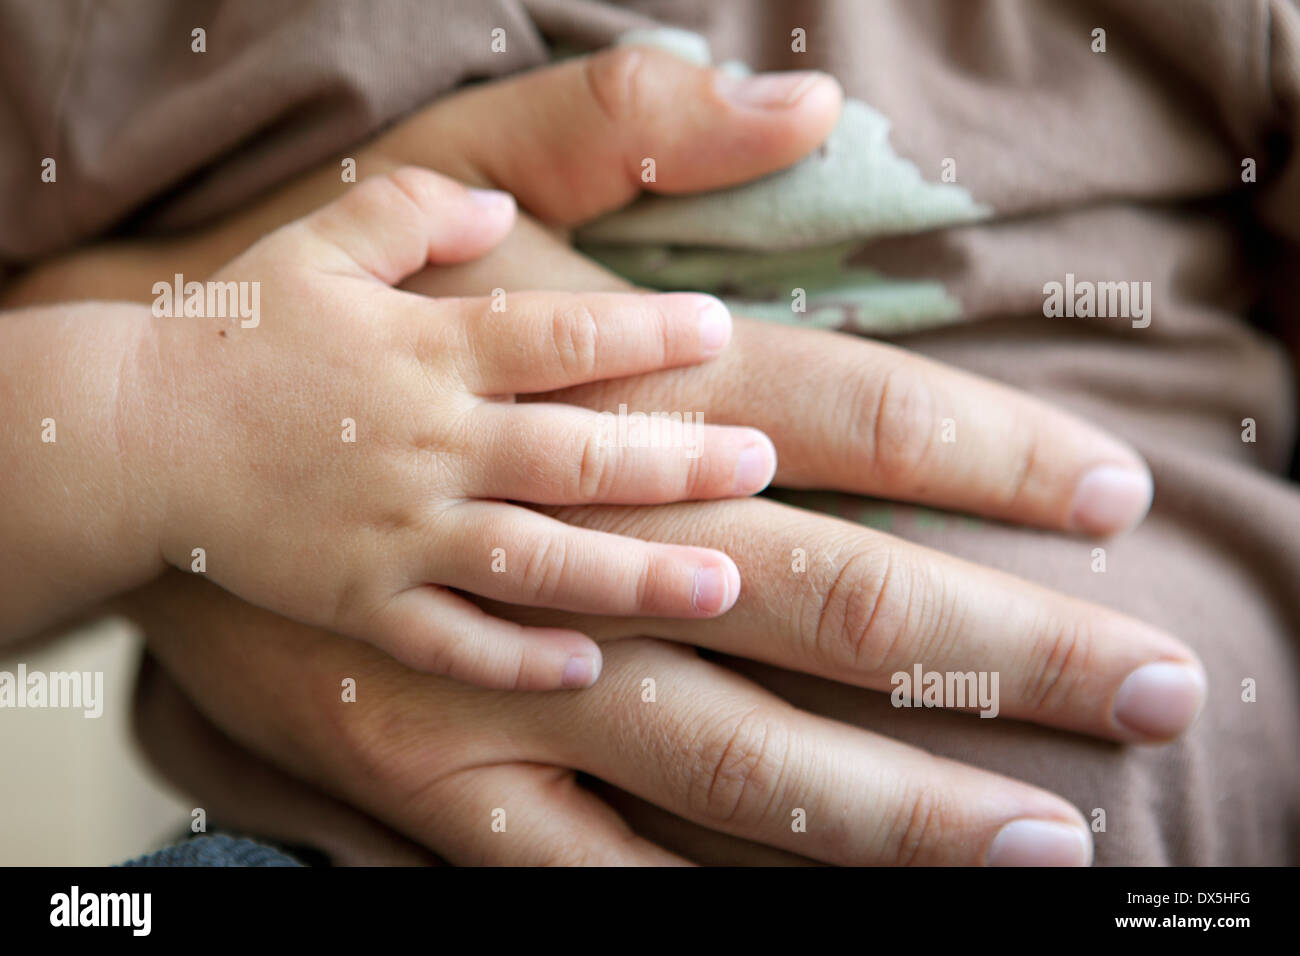 Father and baby touching hands lovingly, close up - Stock Image